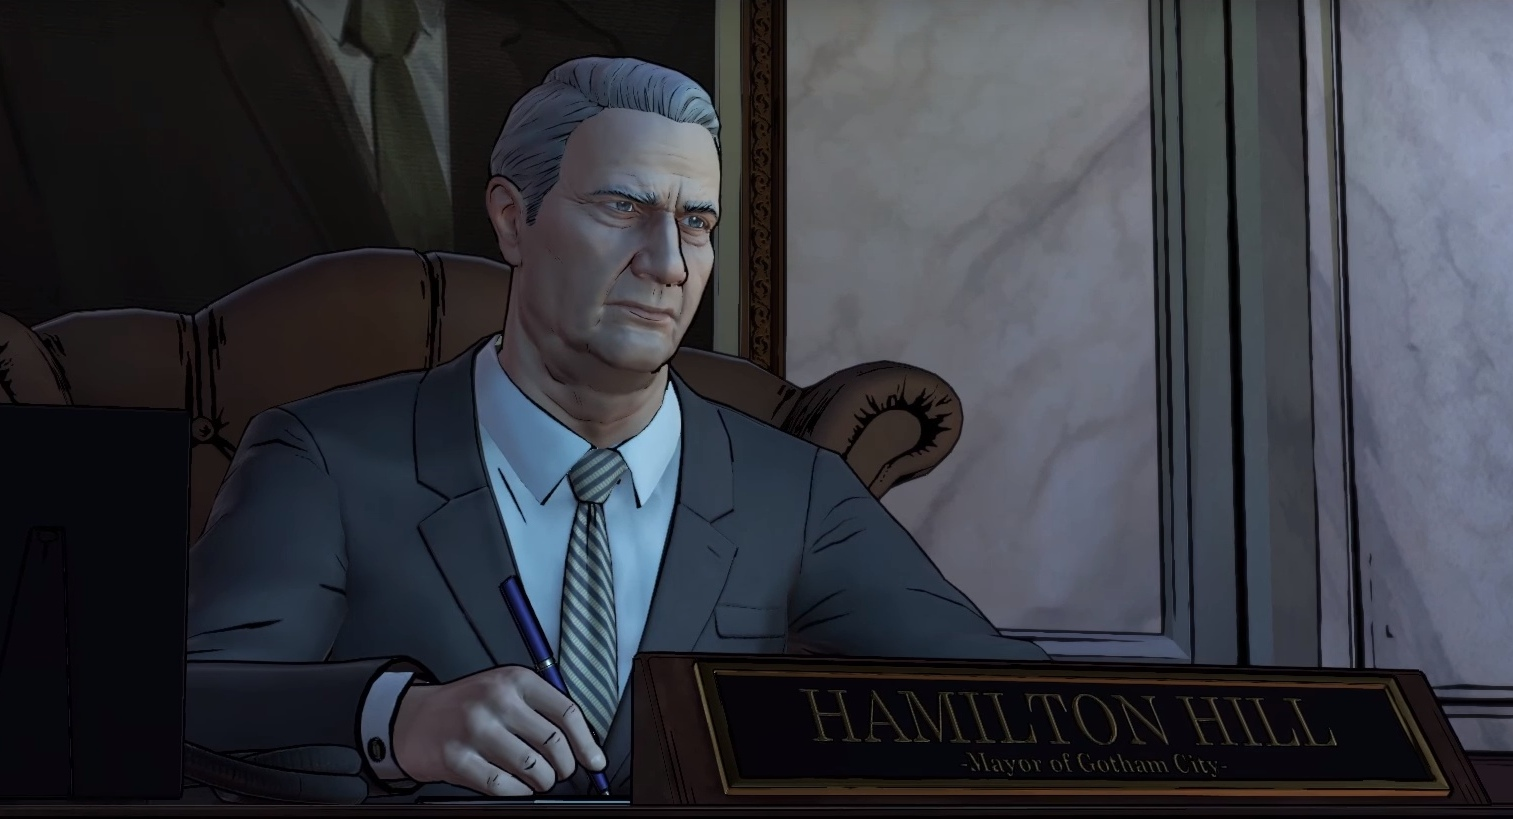 Hamilton Hill (Batman: The Telltale Series)